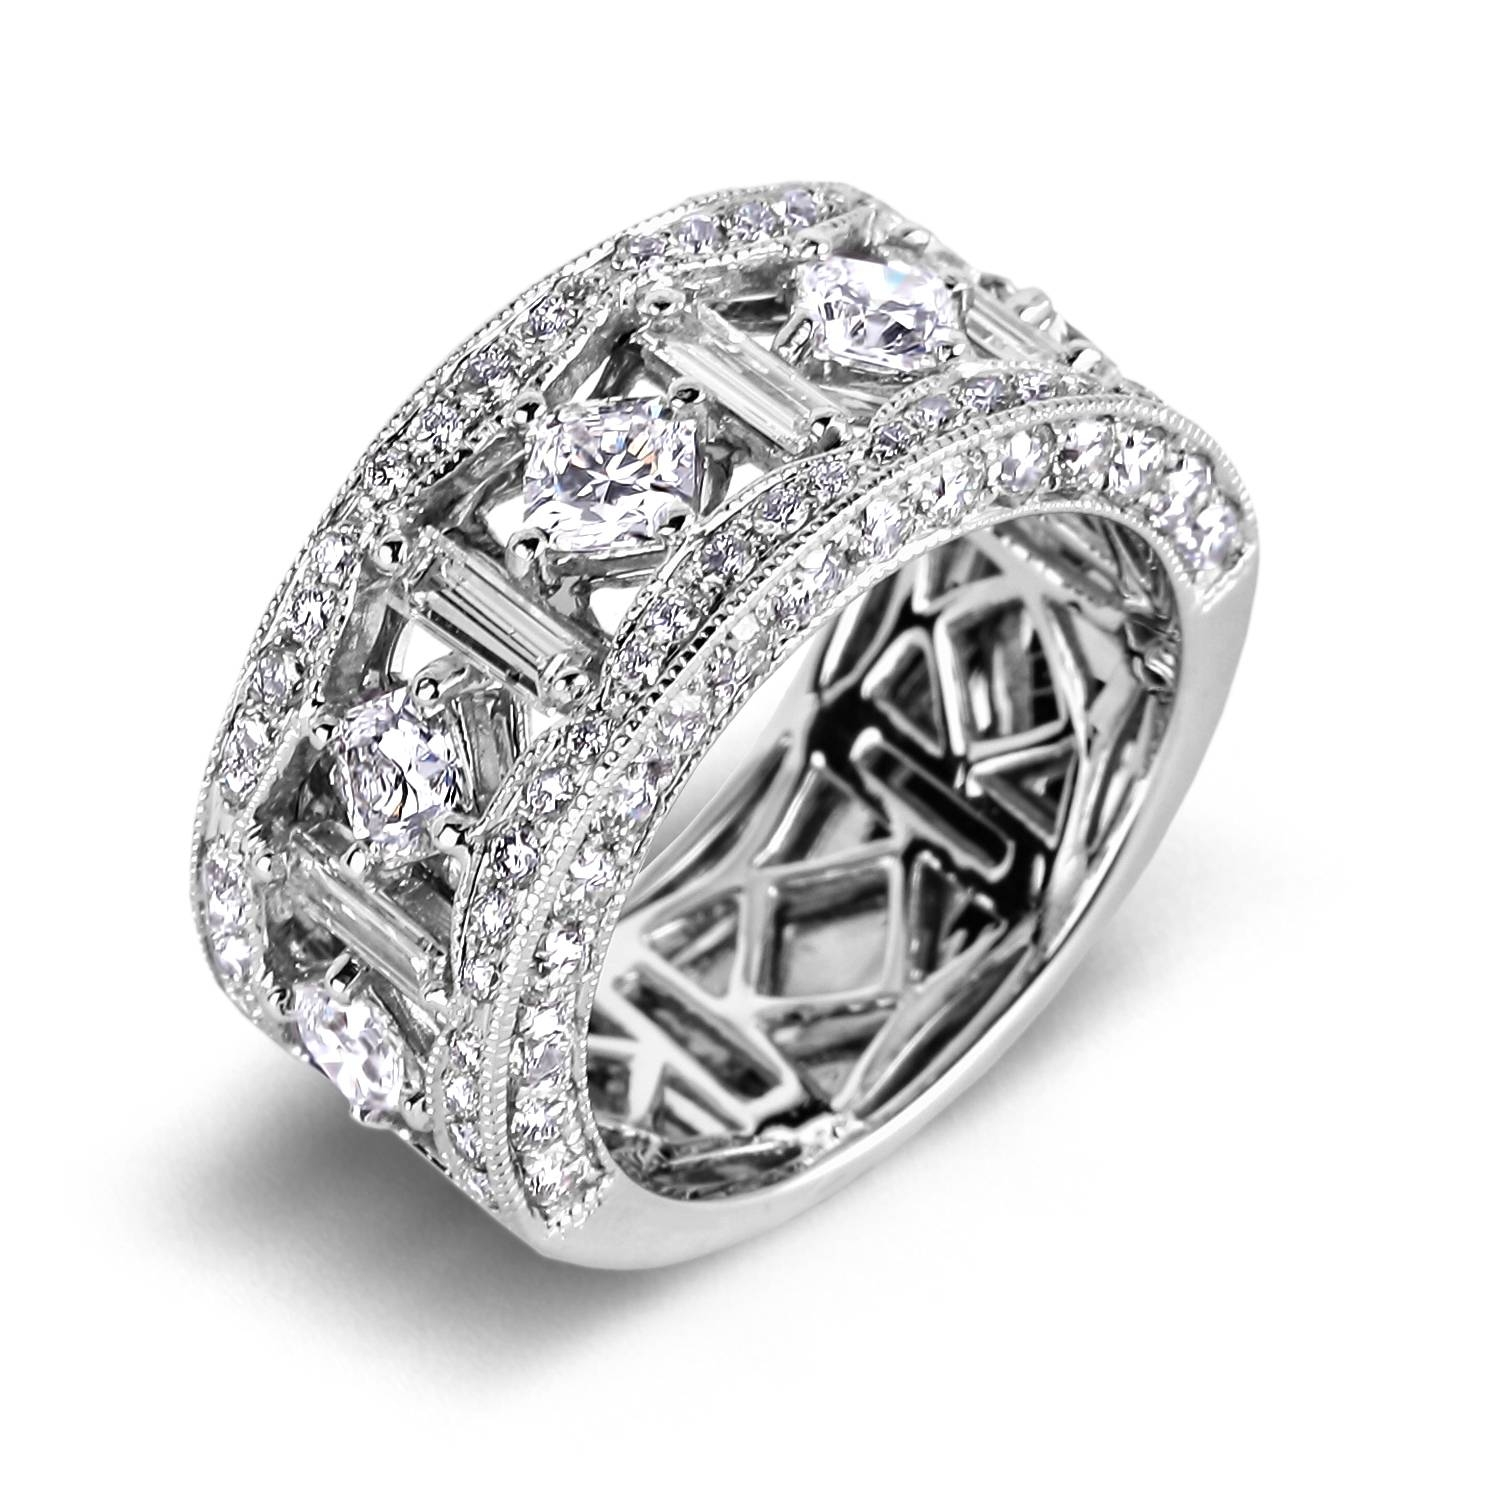 Wedding Anniversary Rings Diamonds | Wedding Ideas In Recent 5 Diamond Anniversary Rings (View 23 of 25)